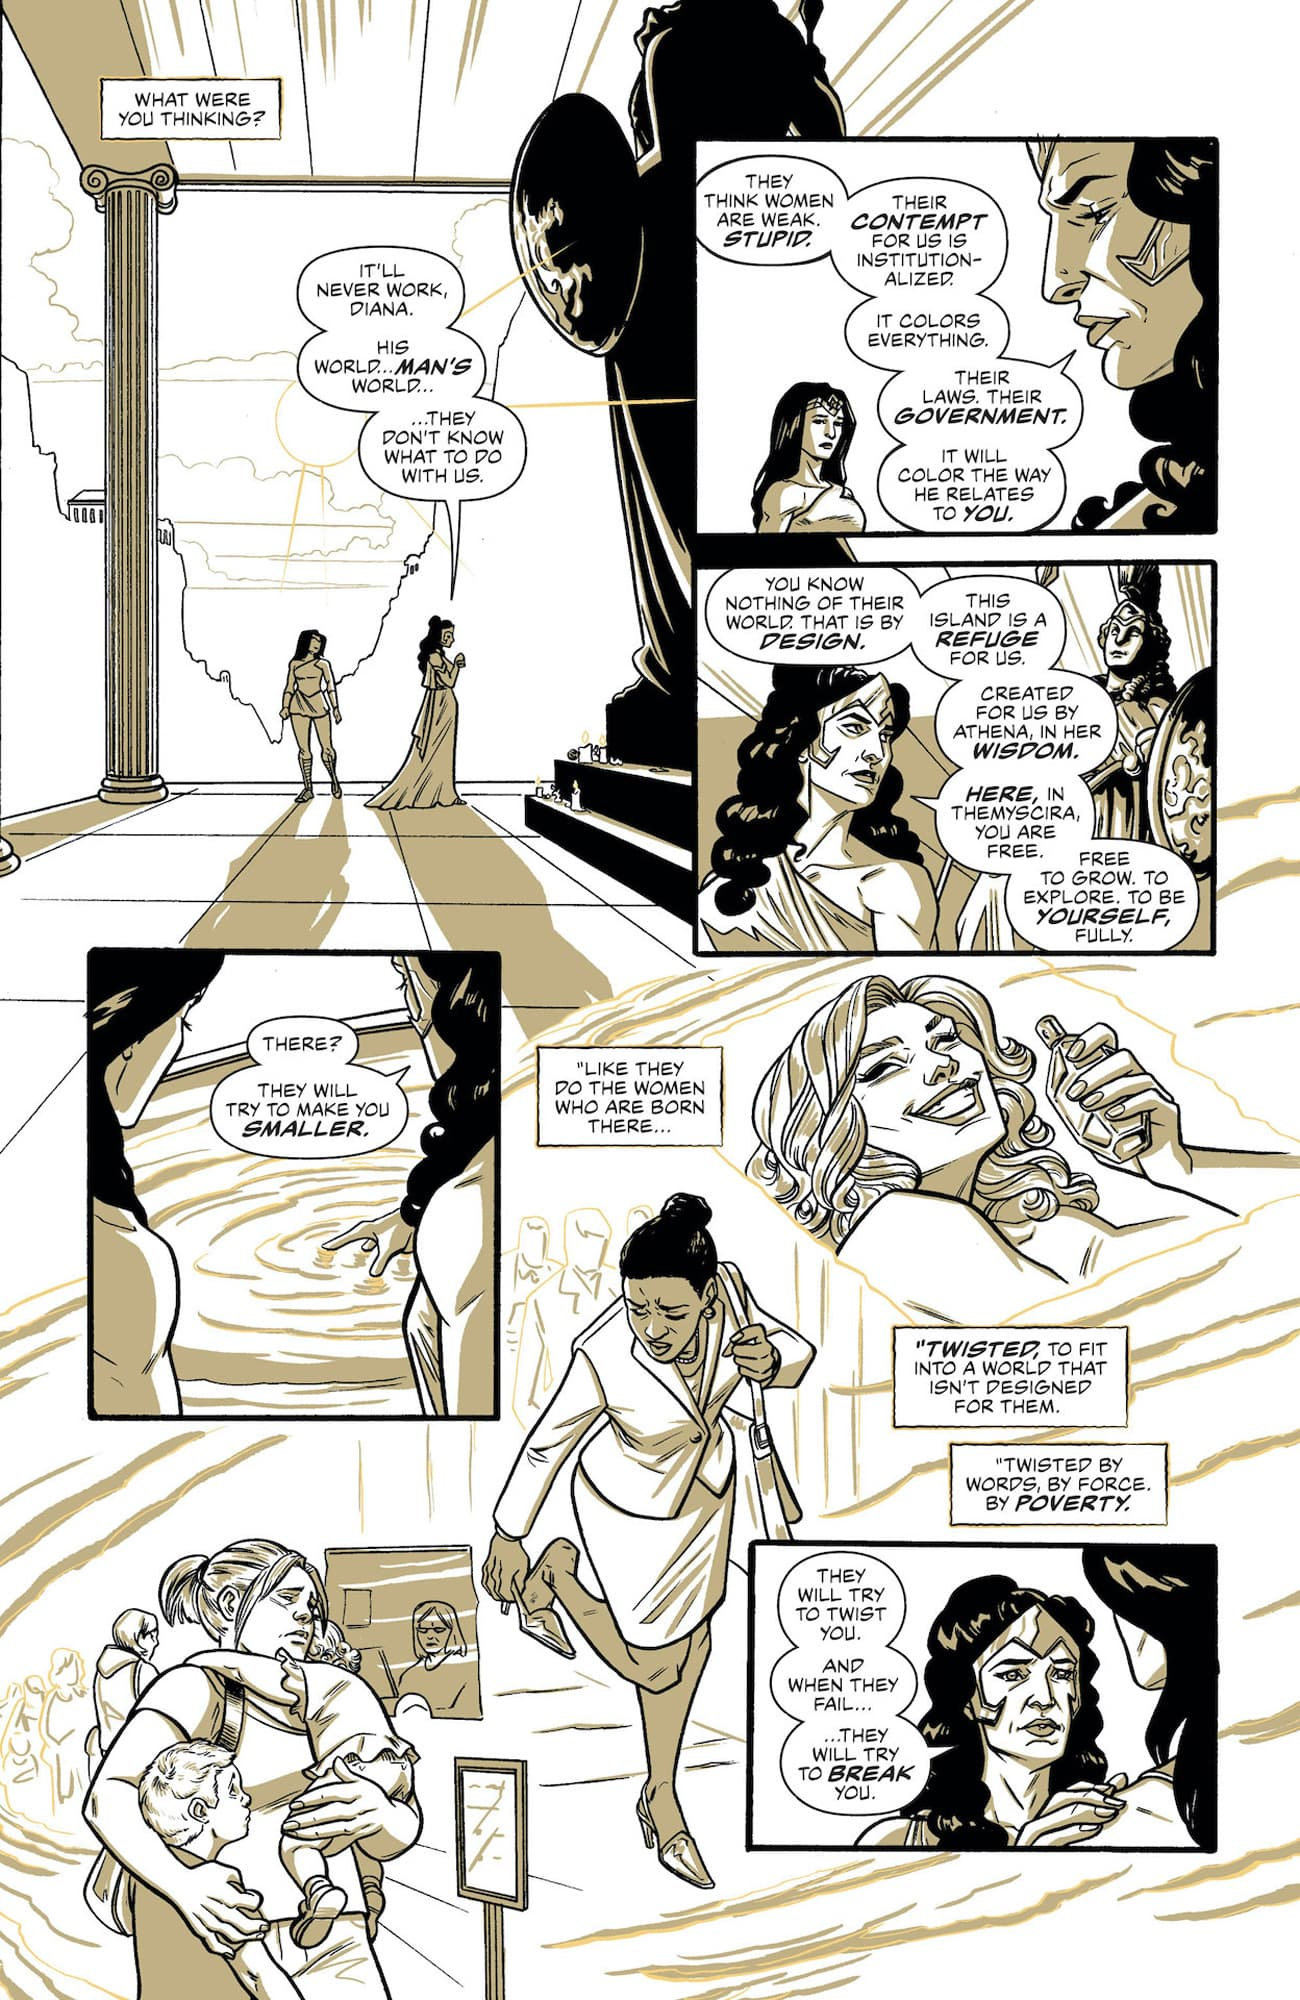 a0003_wonder-woman-black-and-gold_page103